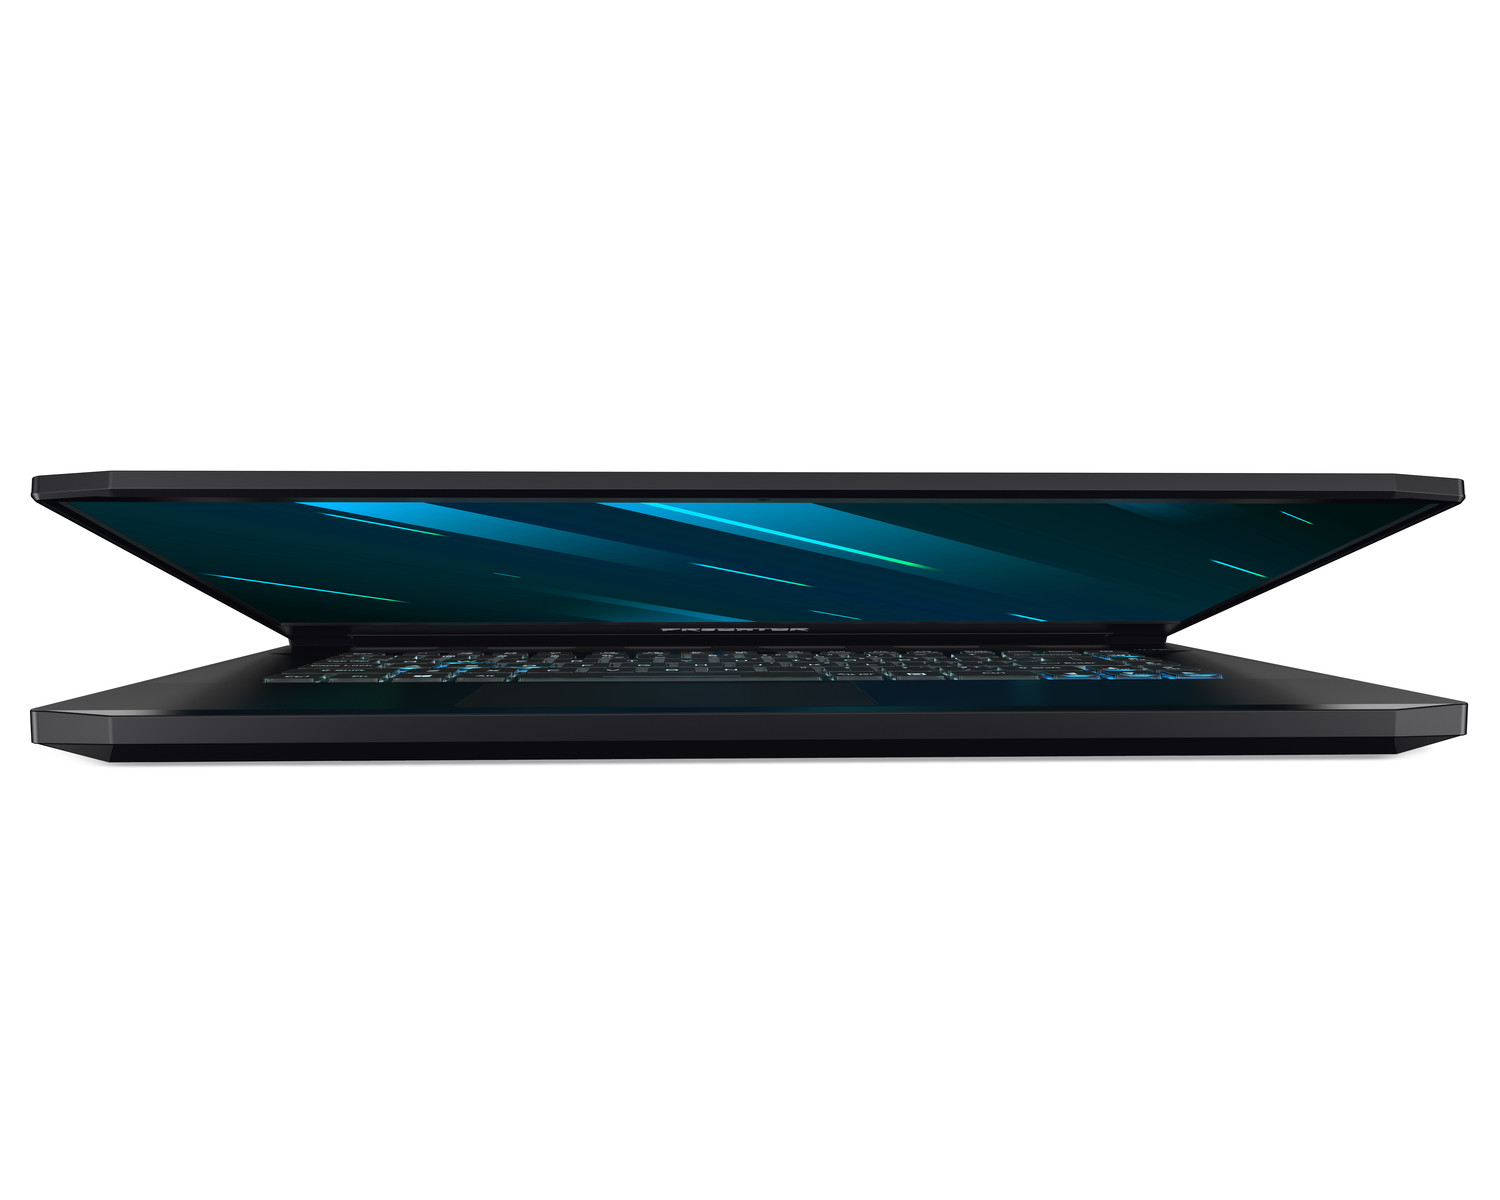 Acer's Predator Triton 900 is an R85k convertible gaming laptop